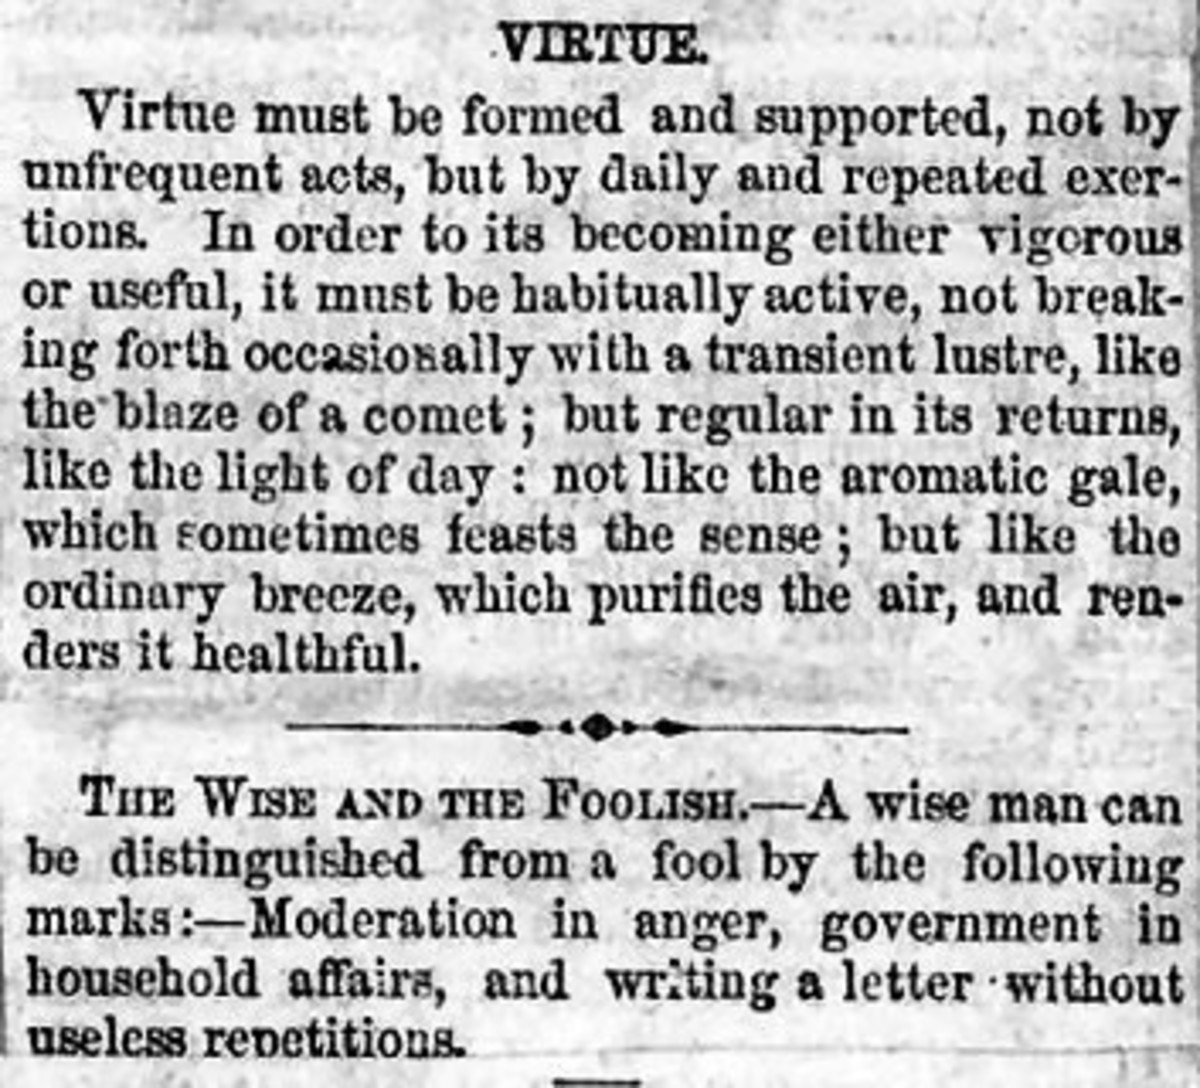 Virtue and 'The Wise and the Foolish'